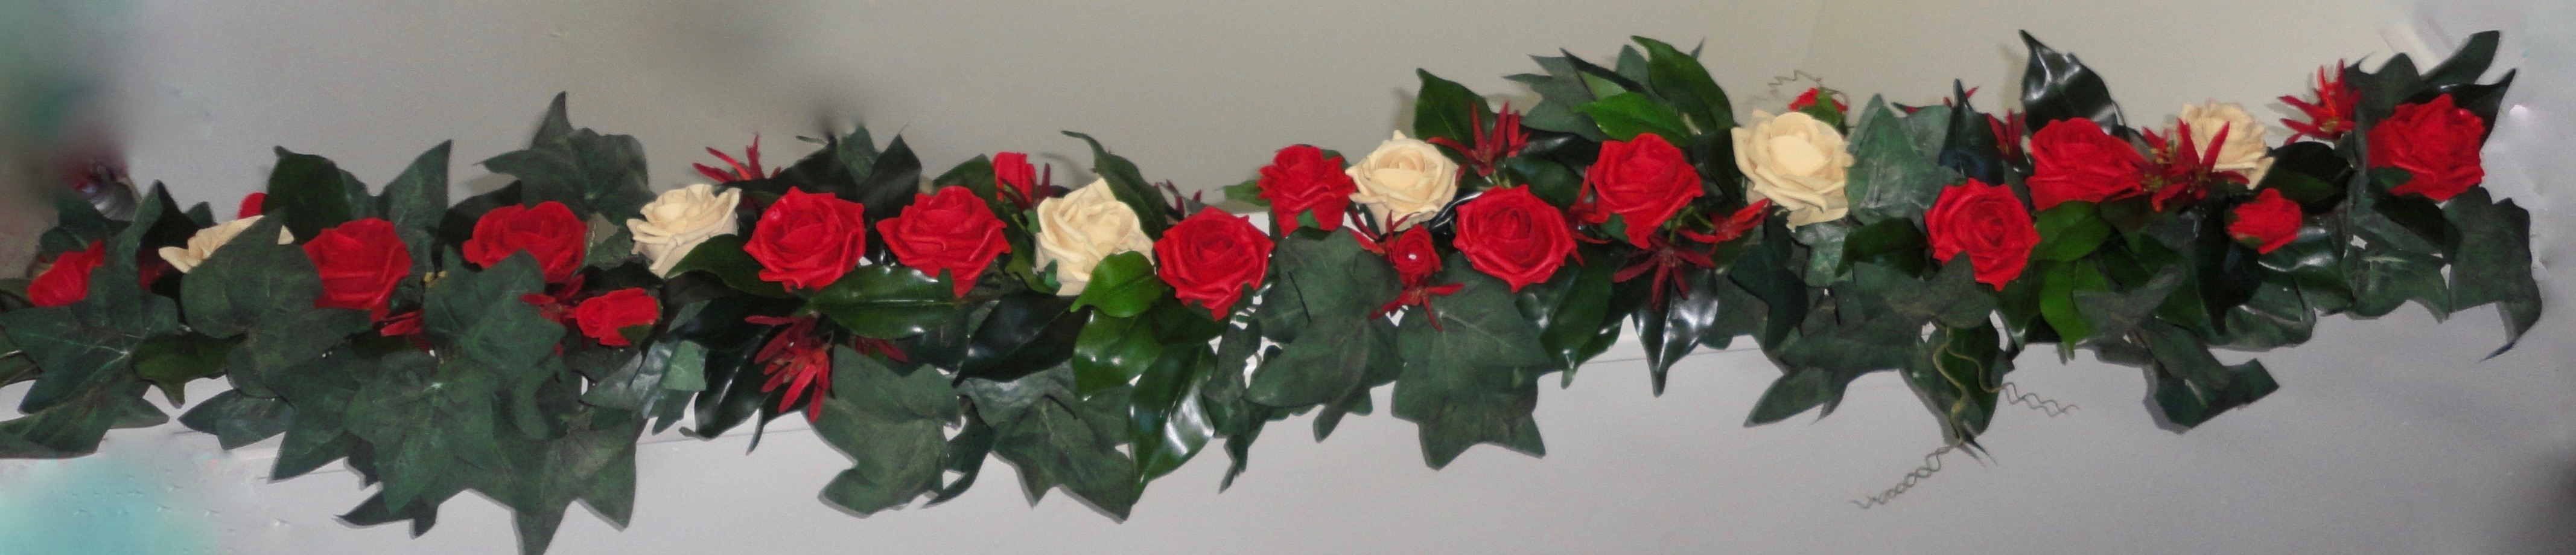 Wedding Garlands - red rose wedding garland